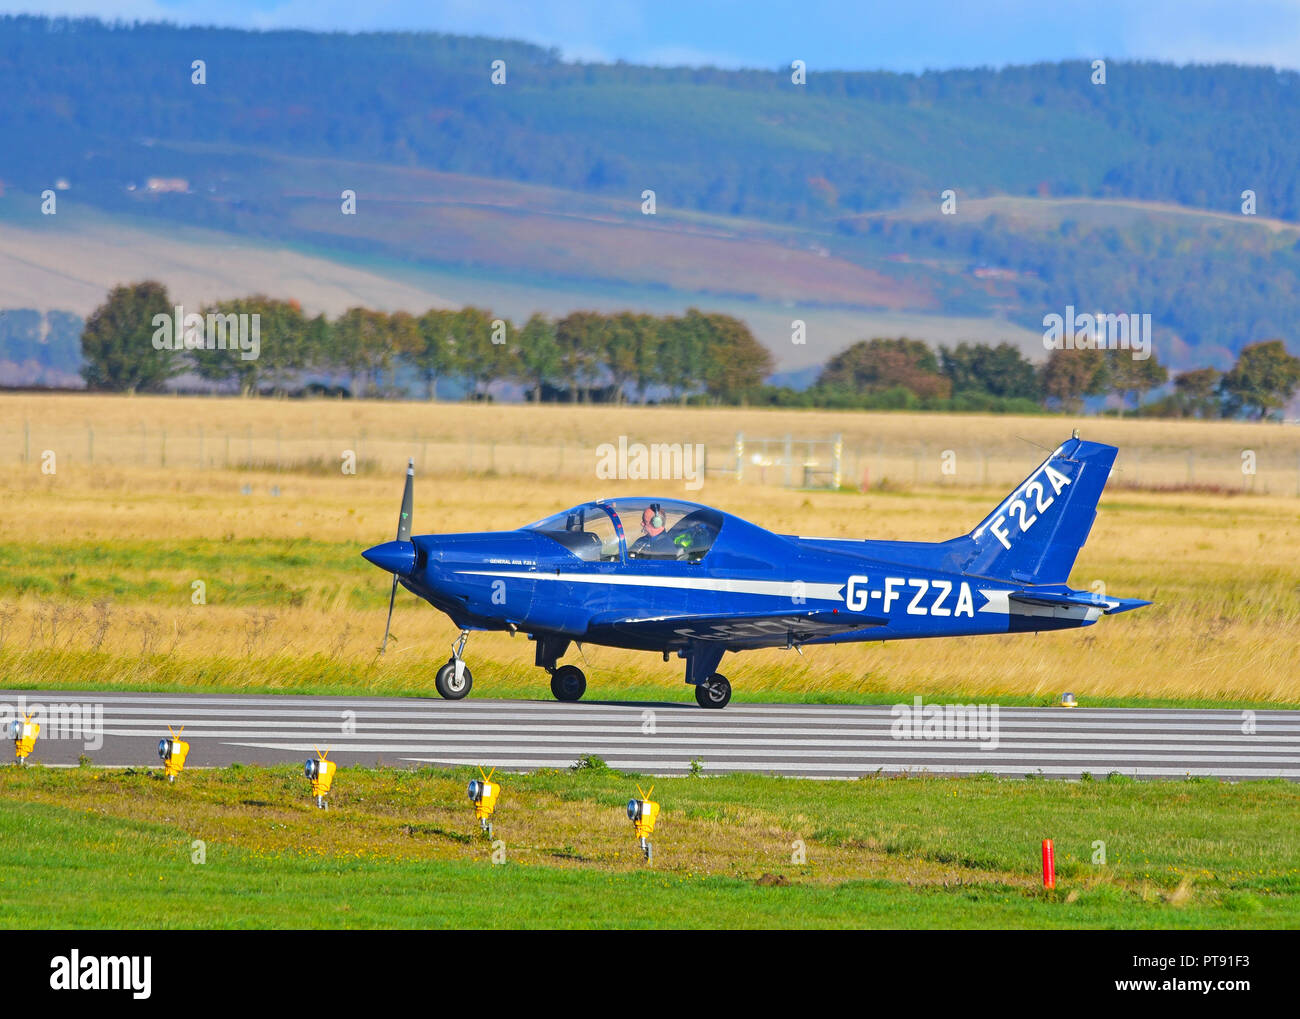 A general Avia F22A on the runway at Inverness Airport having flown in from Welshpool airfield in Montgomeryshire, Wales. Stock Photo